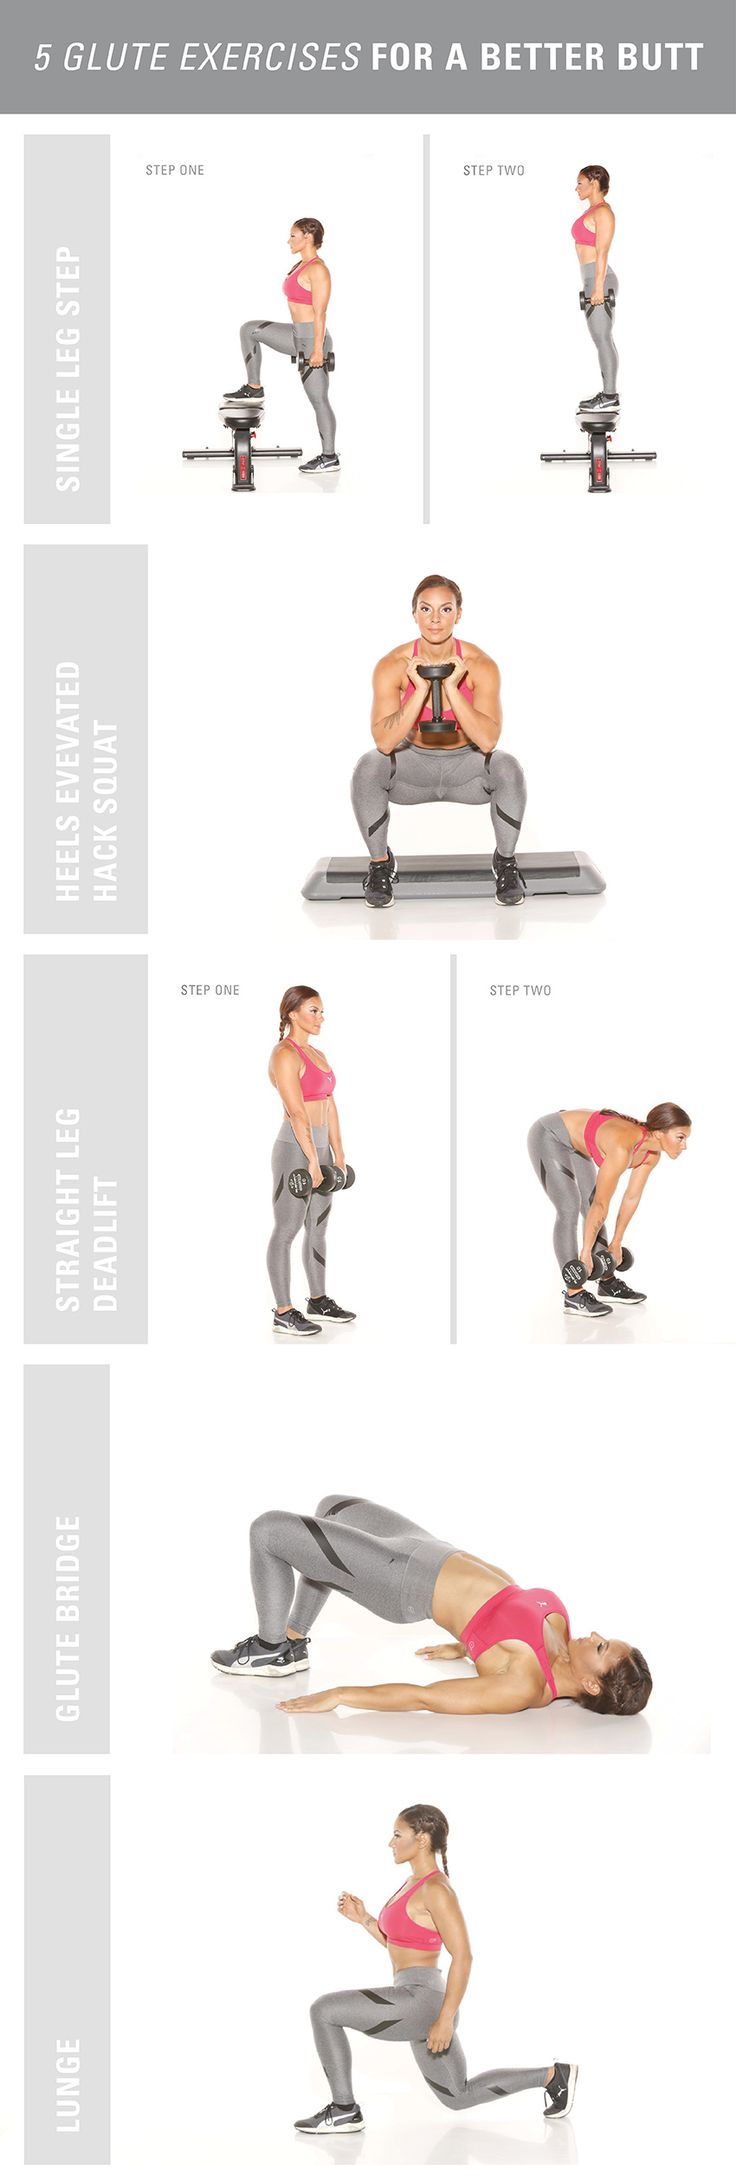 Best Glute Exercises To Get A Toned Butt | Fitness Republic